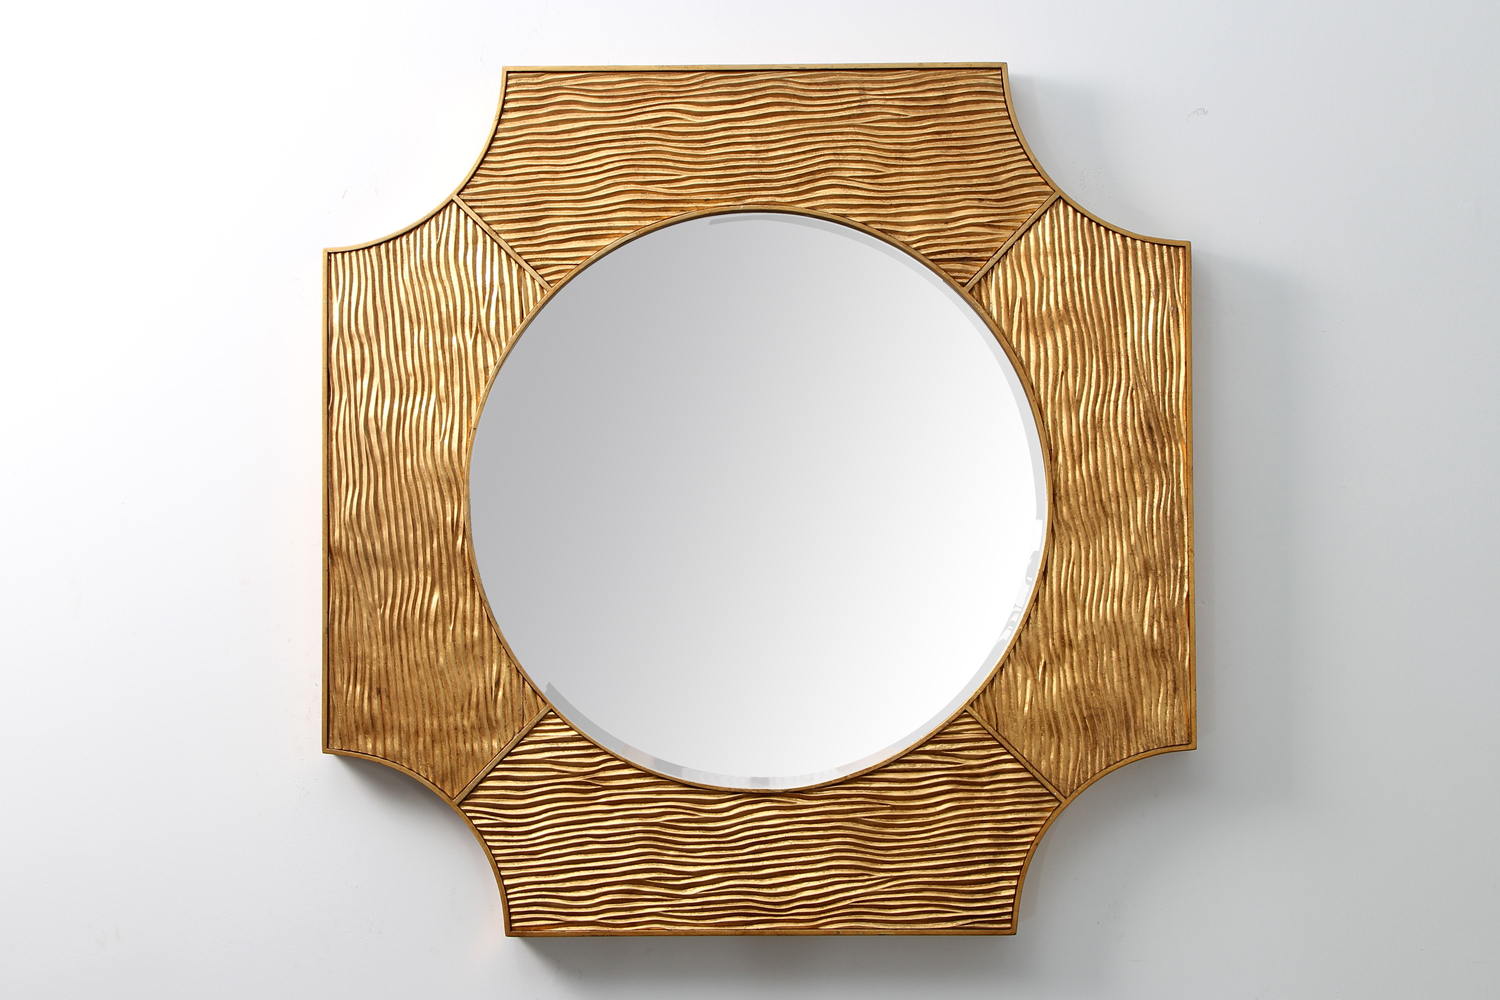 Lucas Wall Mirror – Antique Gold Intended For Current Gold Wall Mirrors (View 15 of 20)